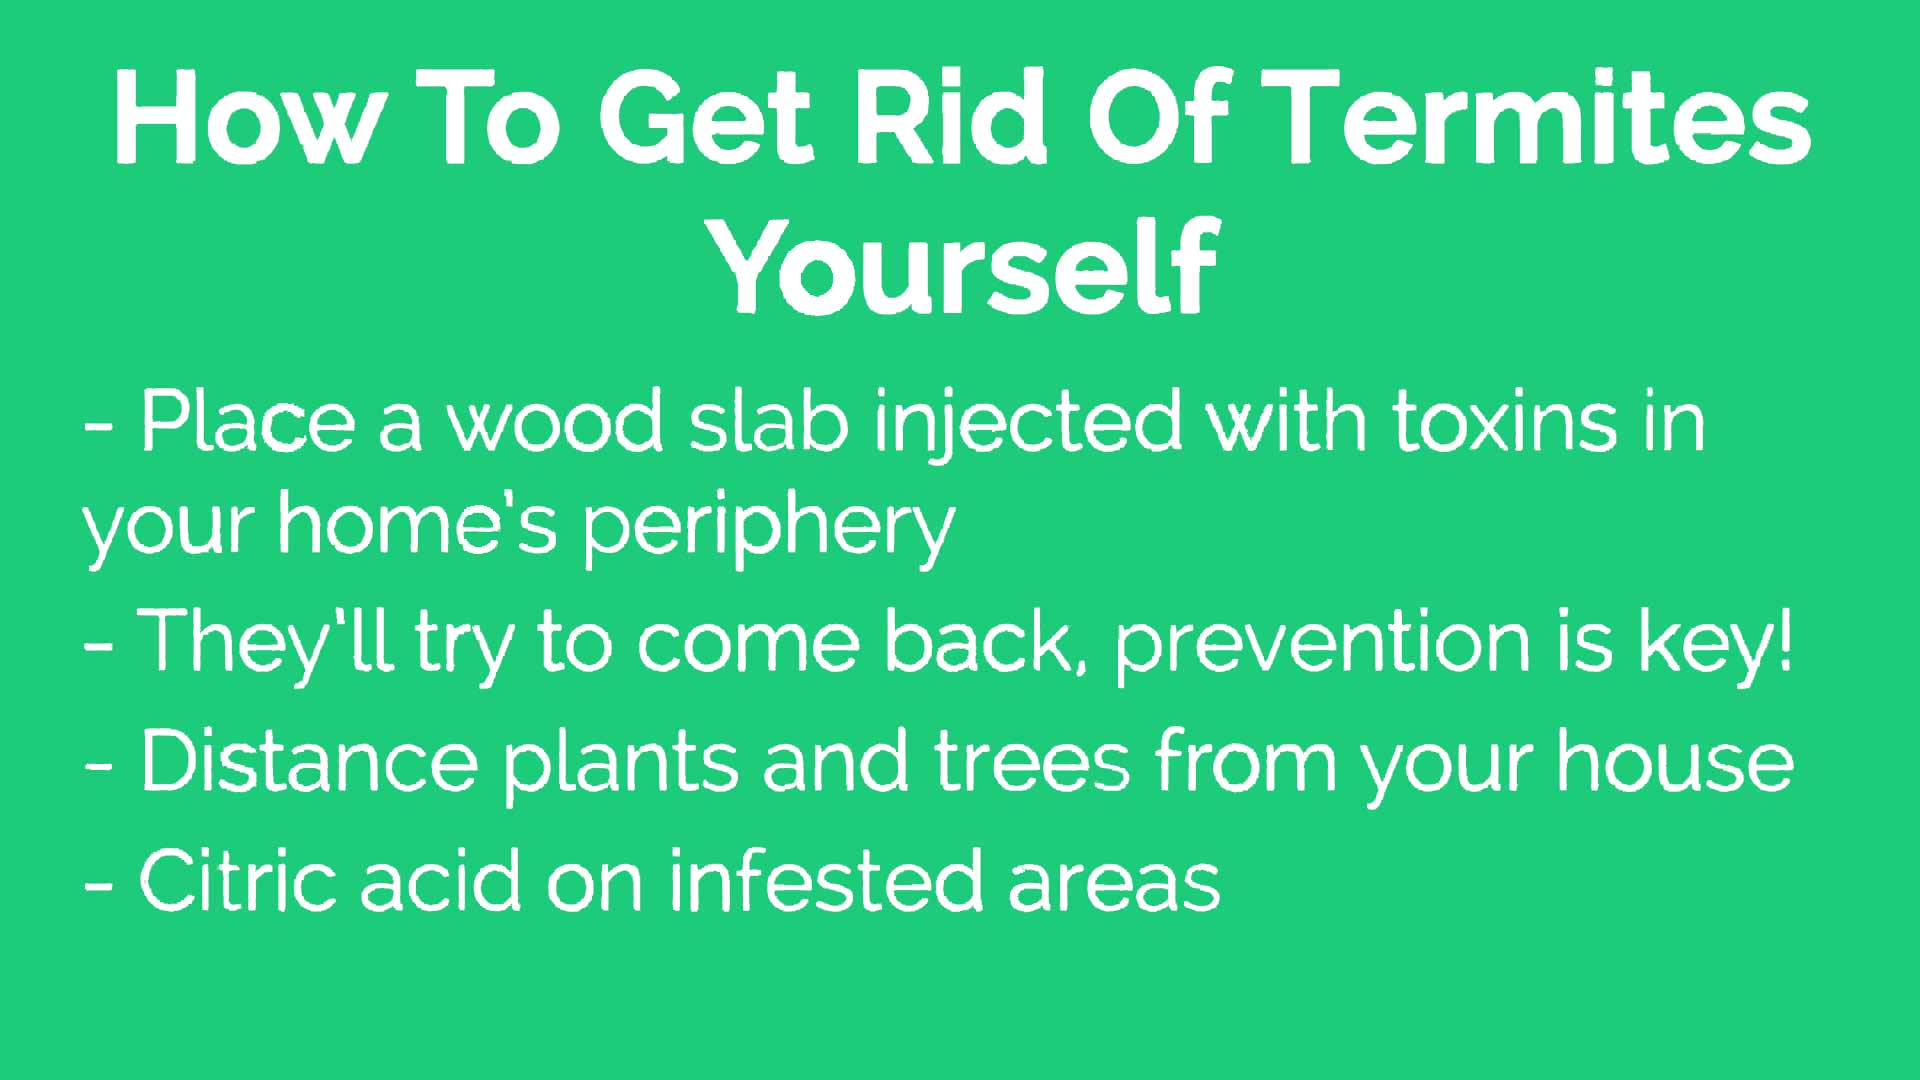 How To Get Rid Of Termites Natural Way